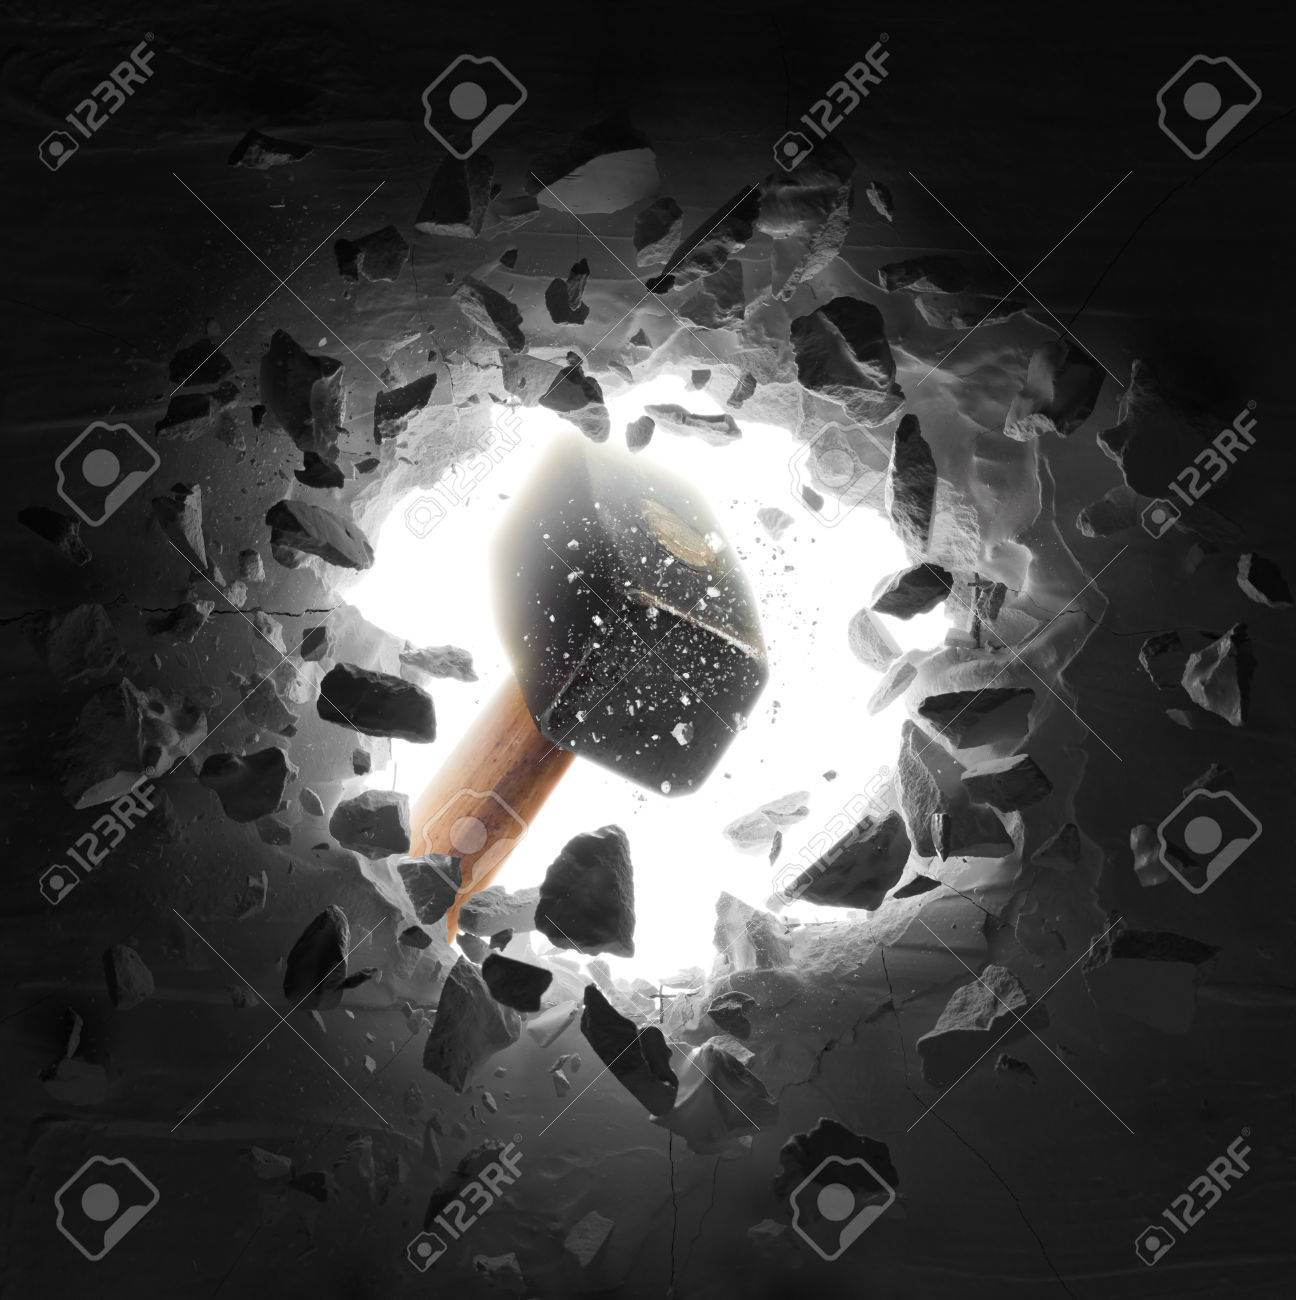 hammer hitting the wall causing hole and debris - 83265537